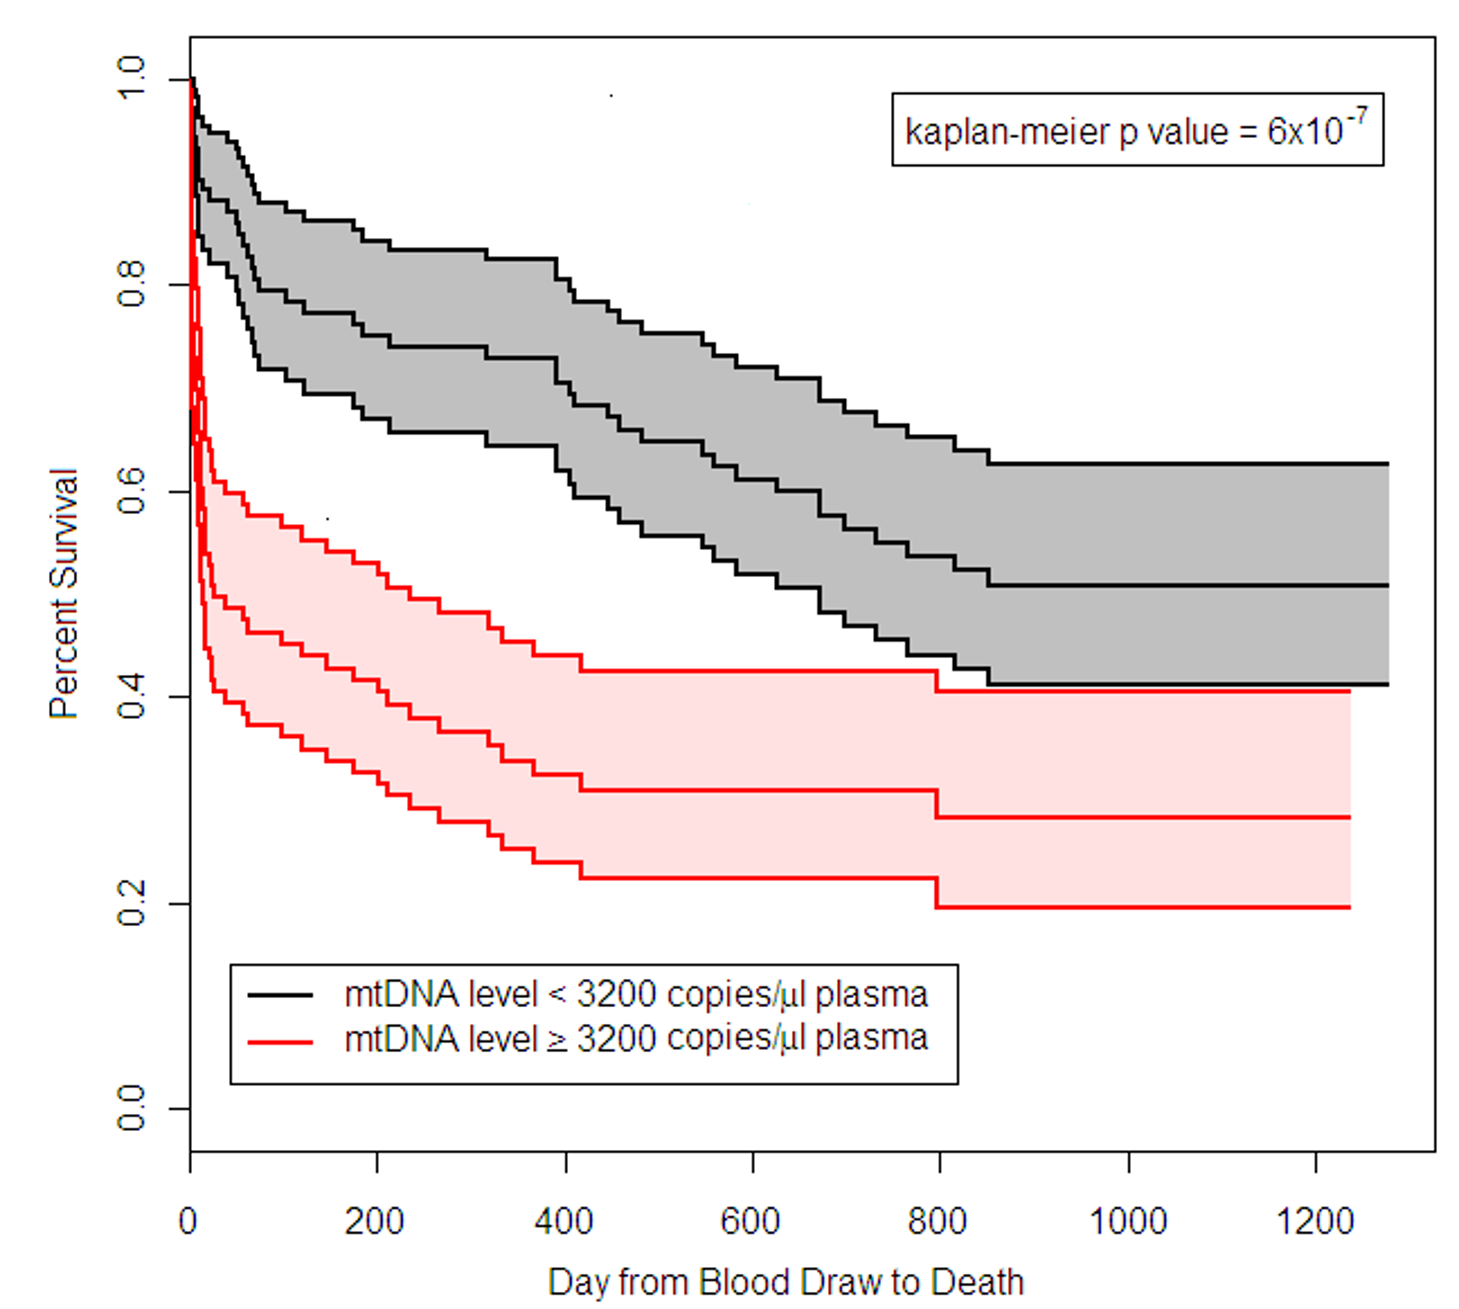 Survival of BWH RoCI MICU patients stratified by mtDNA level.